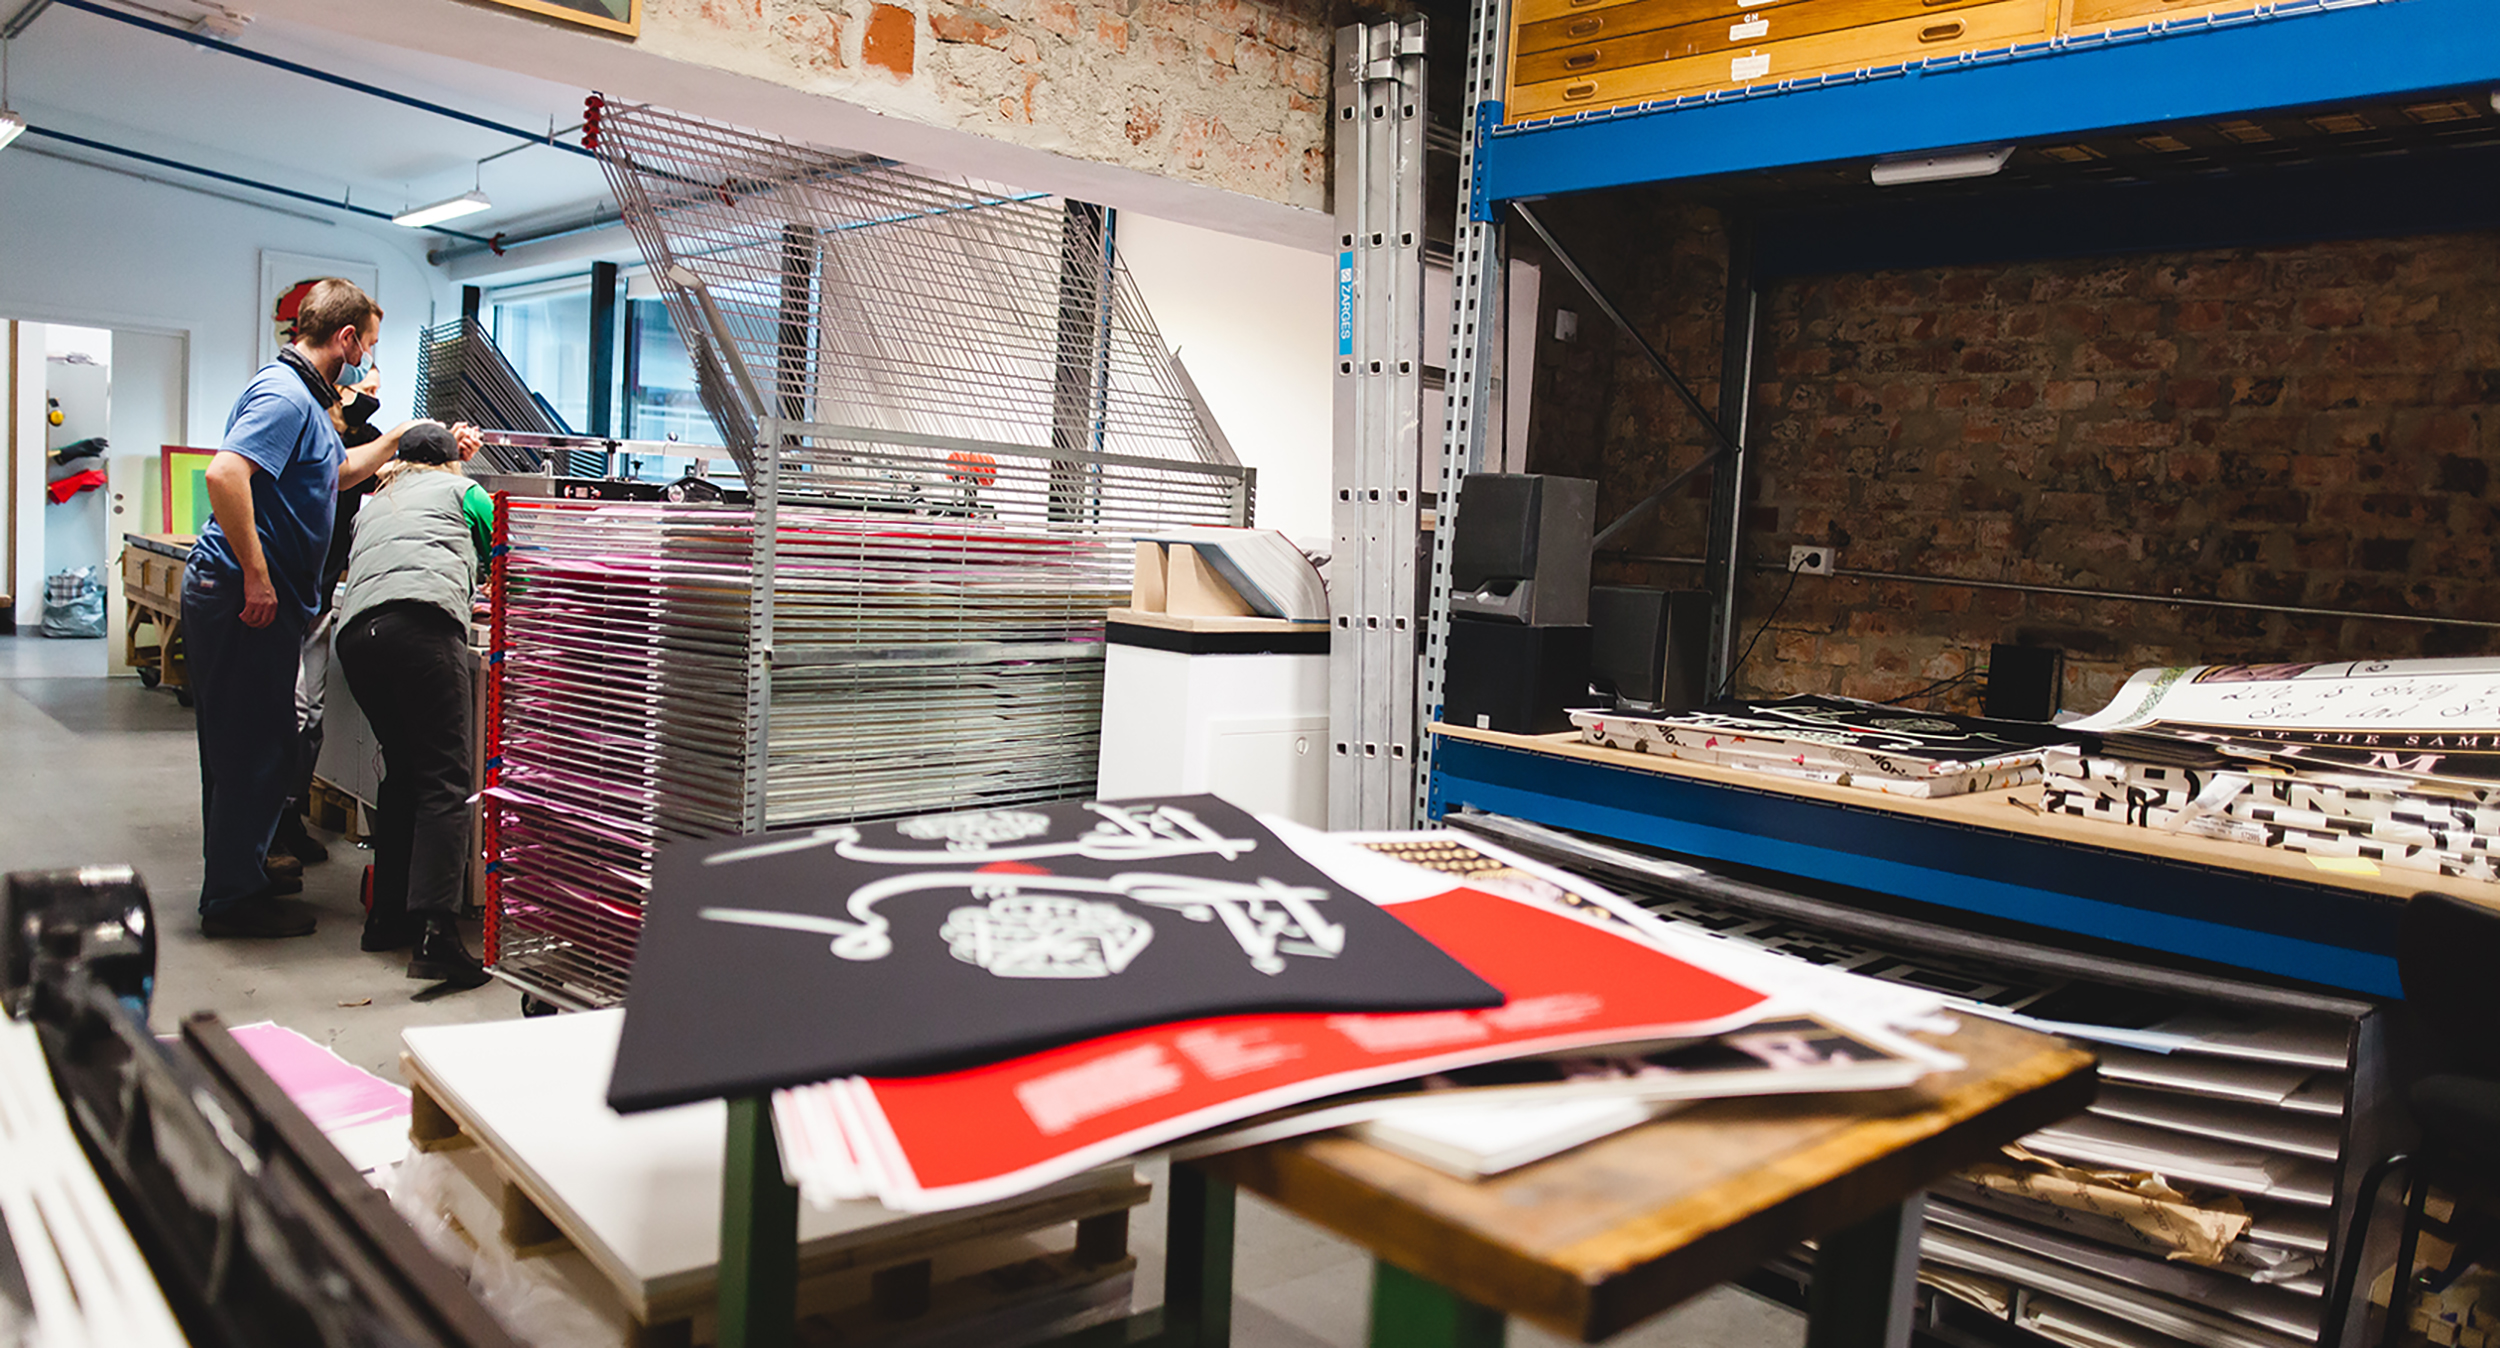 What Do CNC Routers, Plasma Cutters and Ceramics Have to Do with Screen Printing?